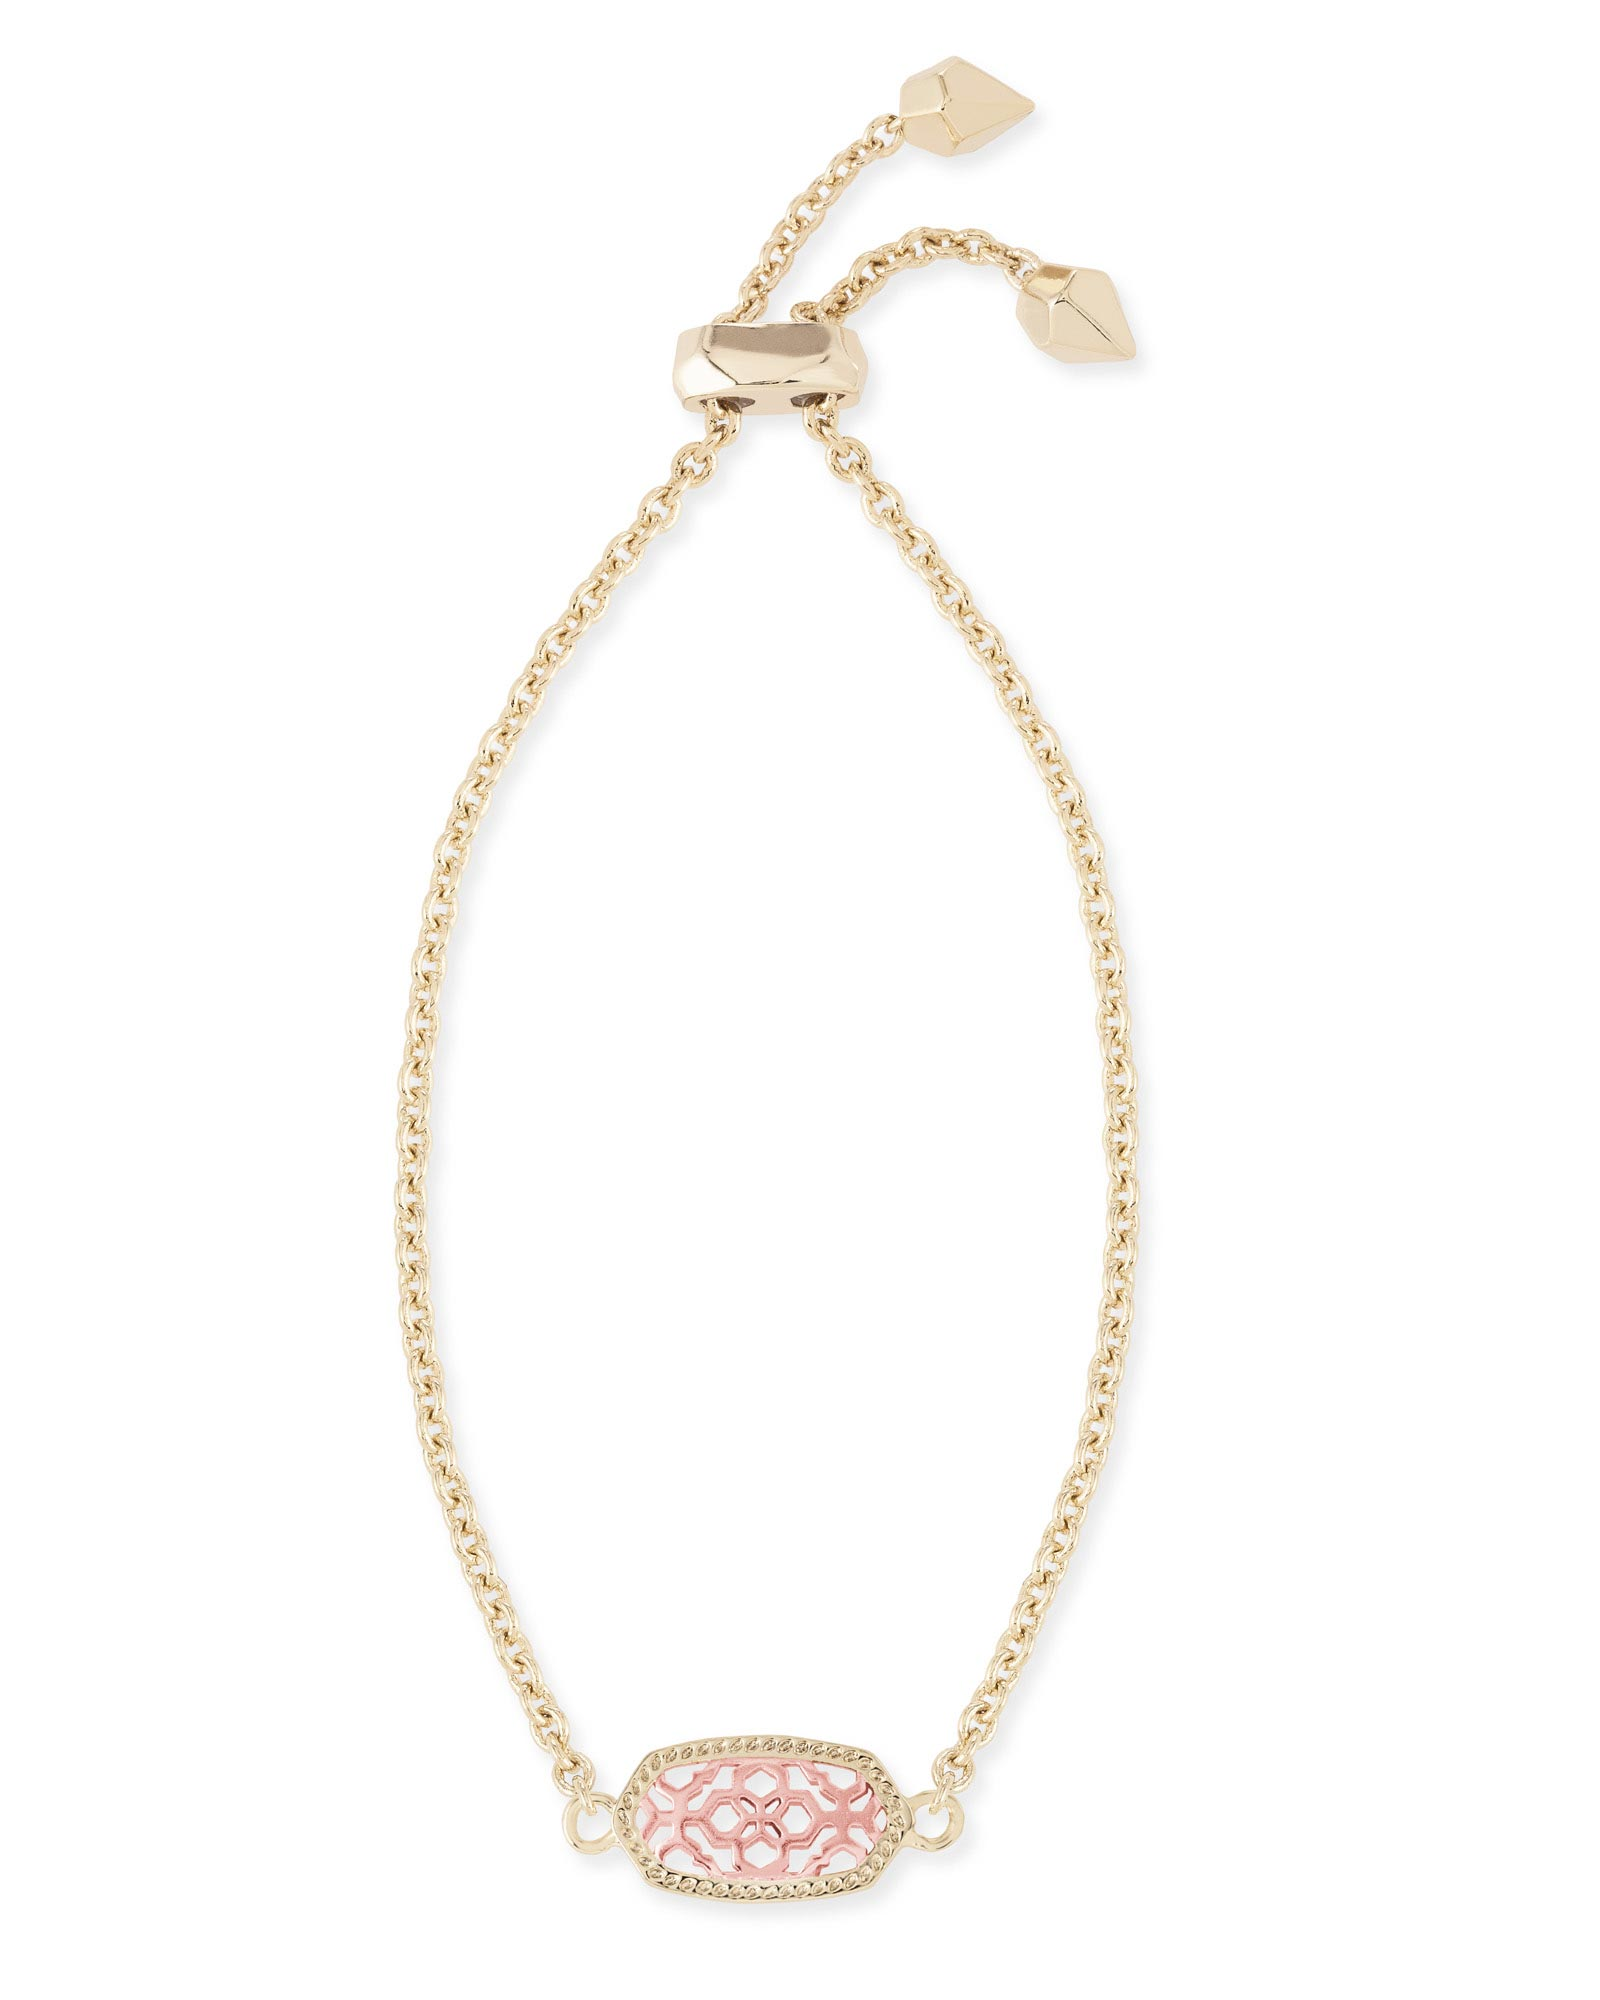 Elaina Gold Adjustable Chain Bracelet in Rose Gold Filigree